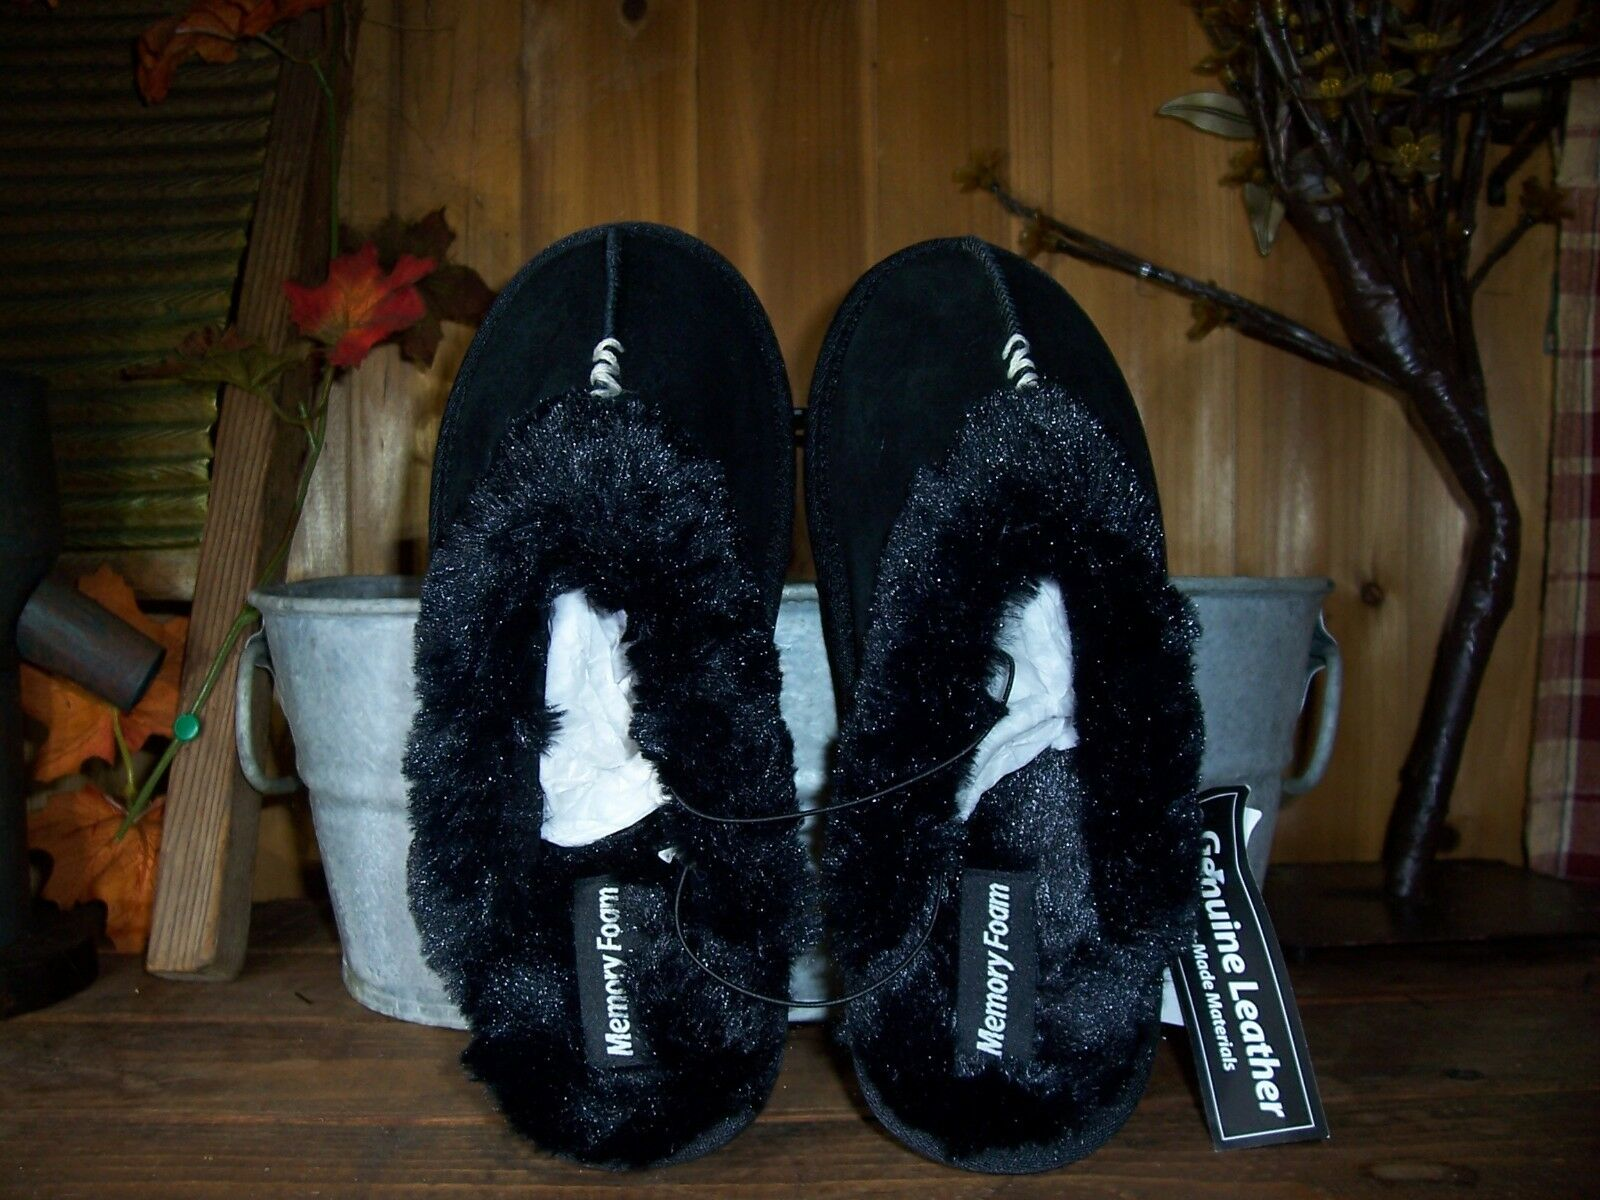 WOMENS GENUINE LEATHER MEMORY FOAM SLIPPERS SIZE SMALL 5-6 RUBBER SOLE FUR LINED